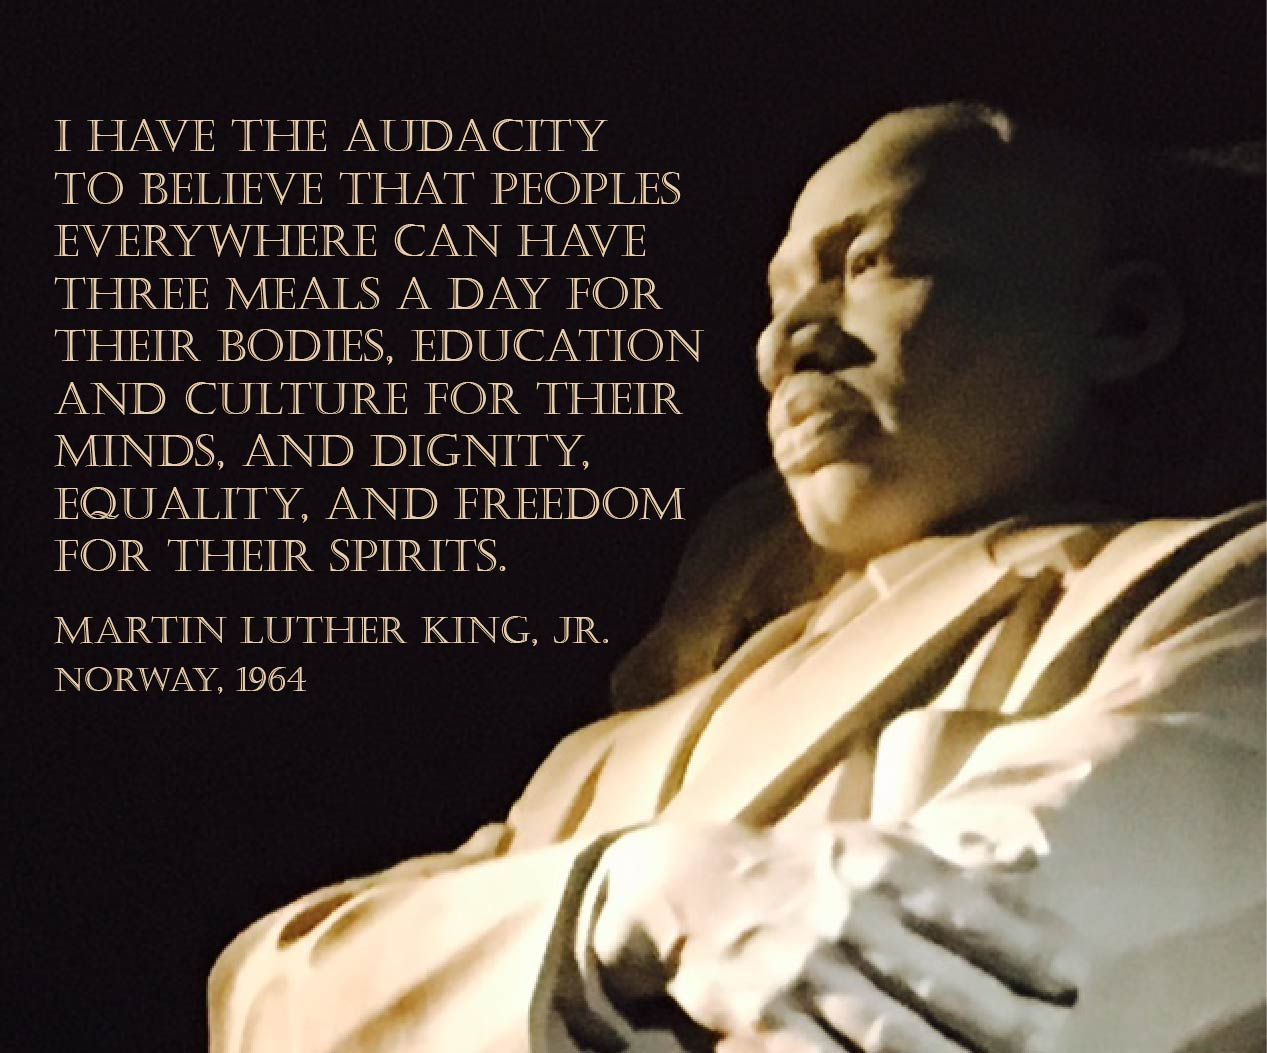 Poster with MLK quote: I have the audacity to belive that peoples everywhere can have three meals a day for their bodies, education and culture for their minds, and dignity, equality, and freedom for their spirits.